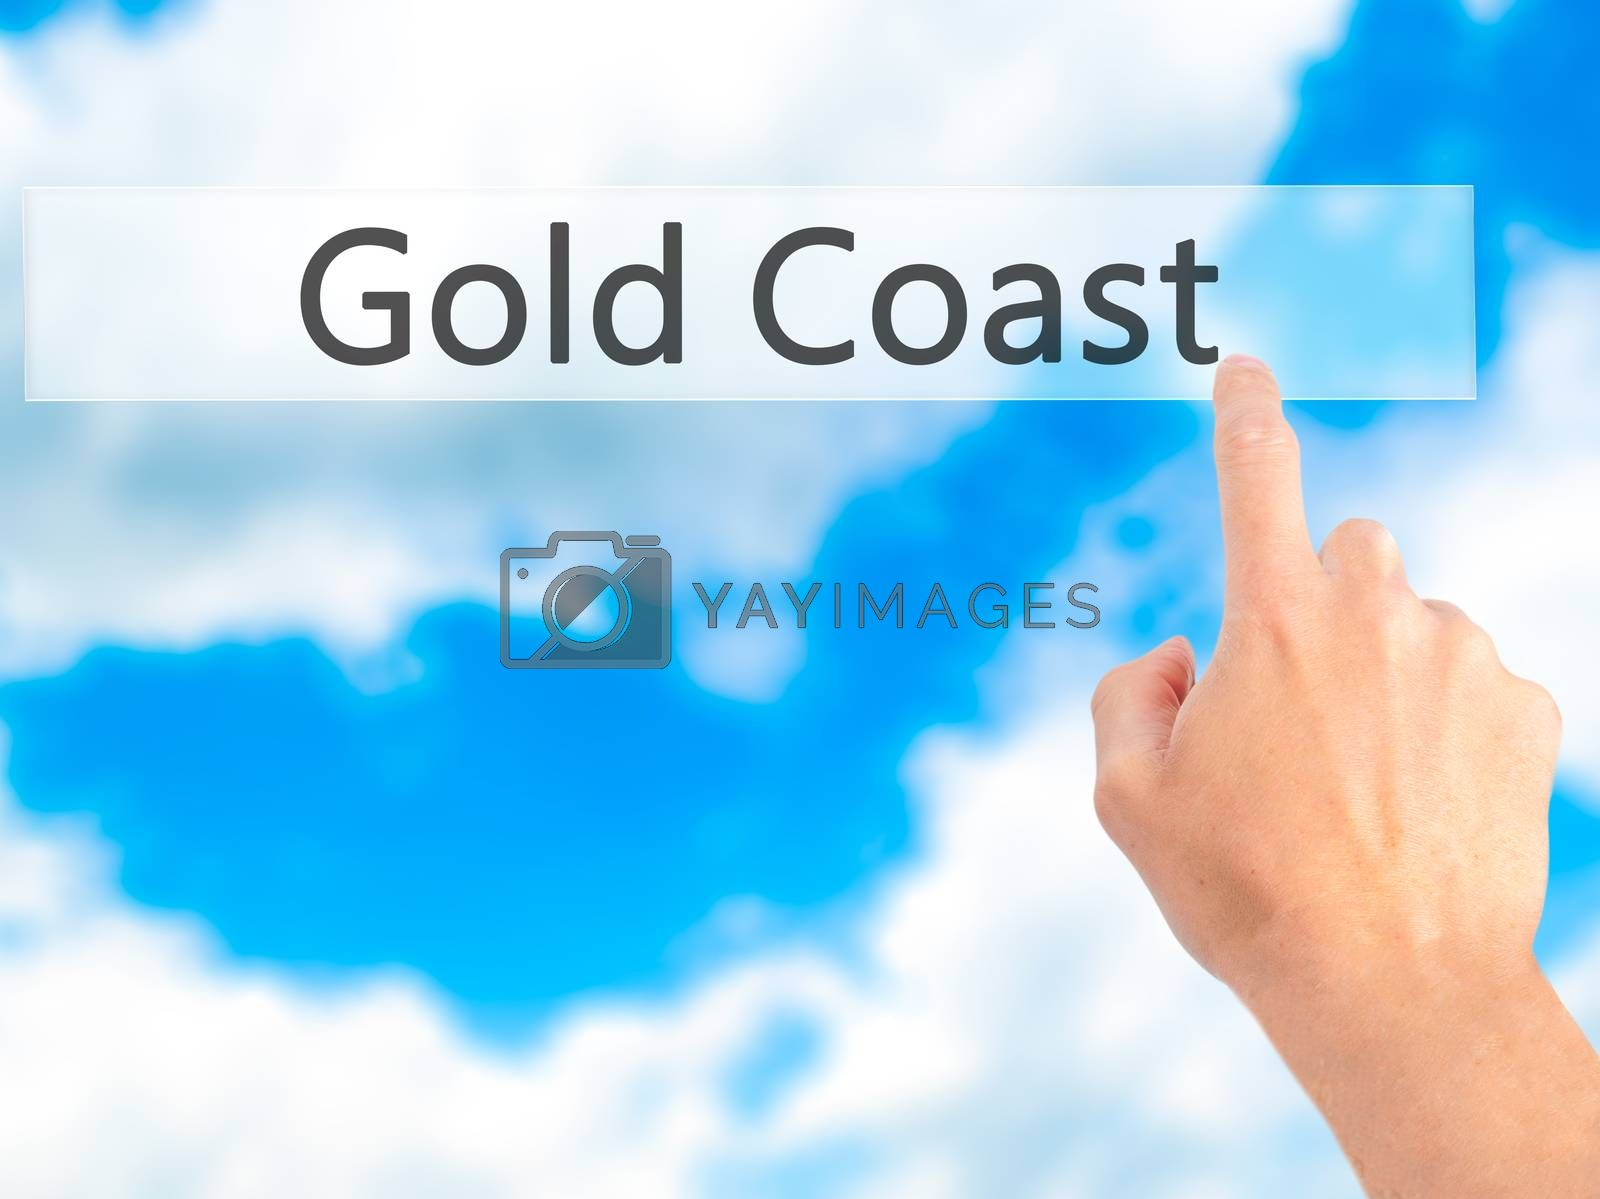 Gold Coast  - Hand pressing a button on blurred background conce by jackald